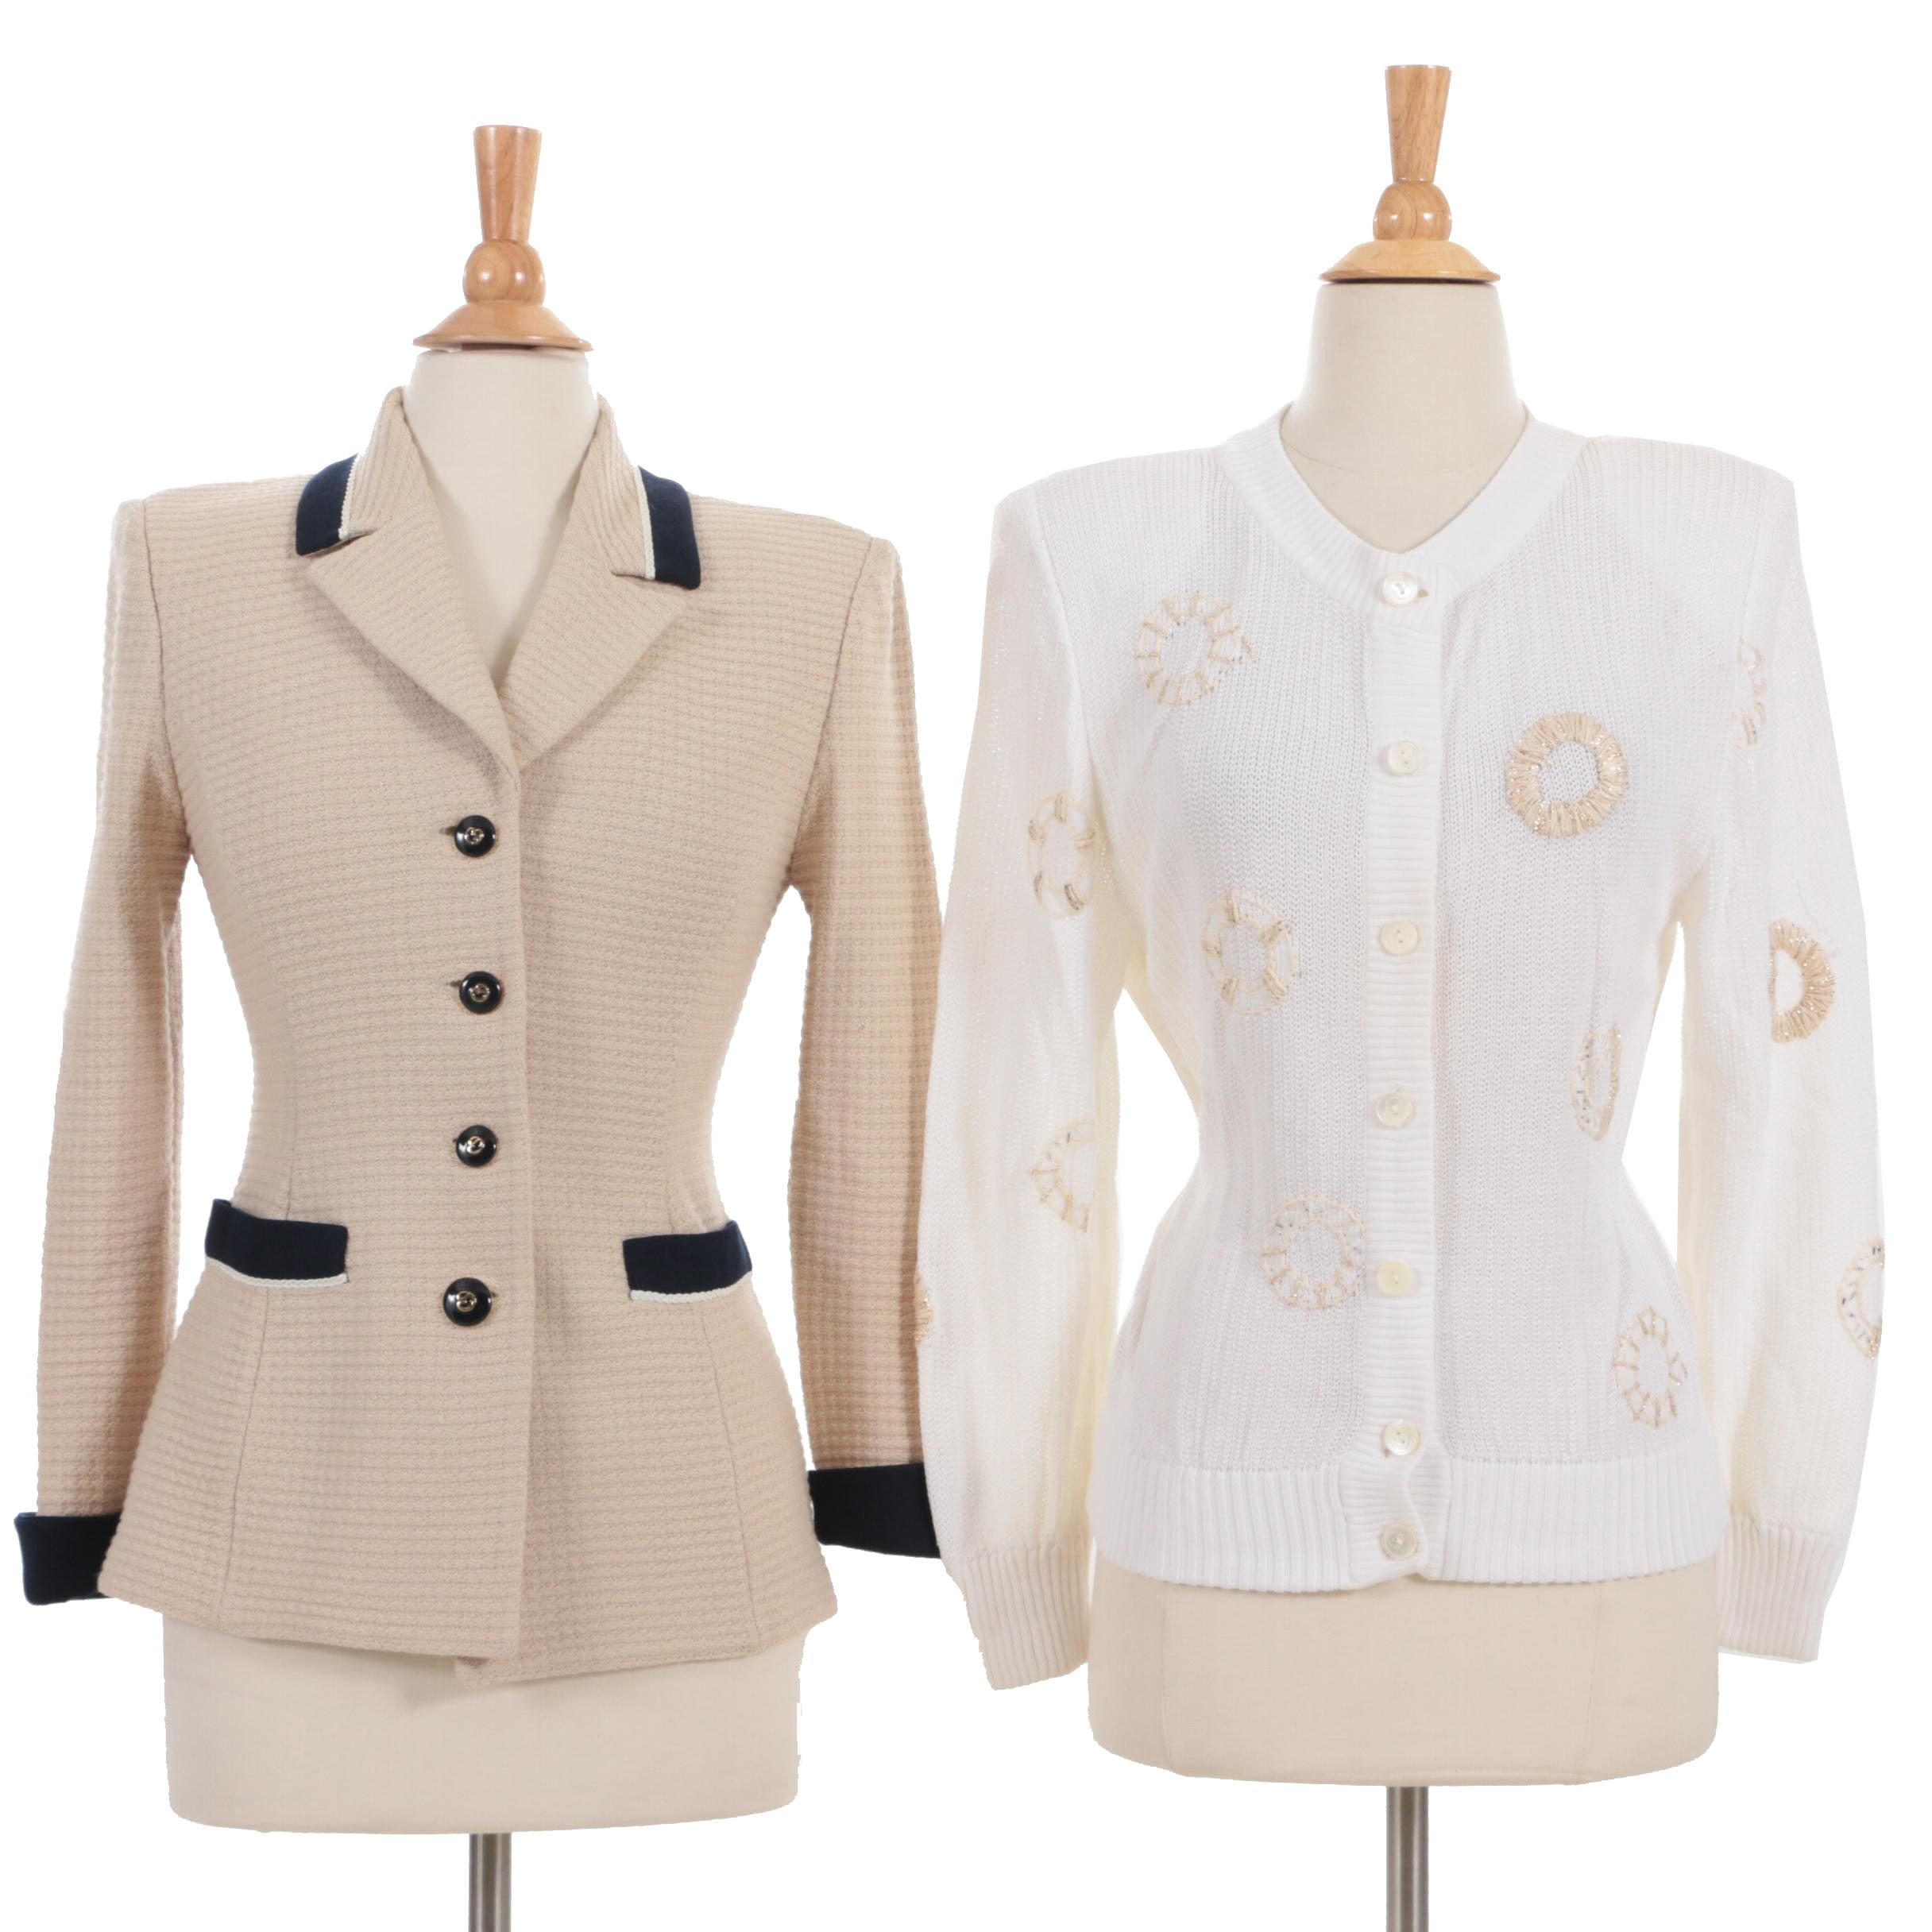 Gucci Embellished Knit Cotton Cardigan and St. John Collection Knit Jacket